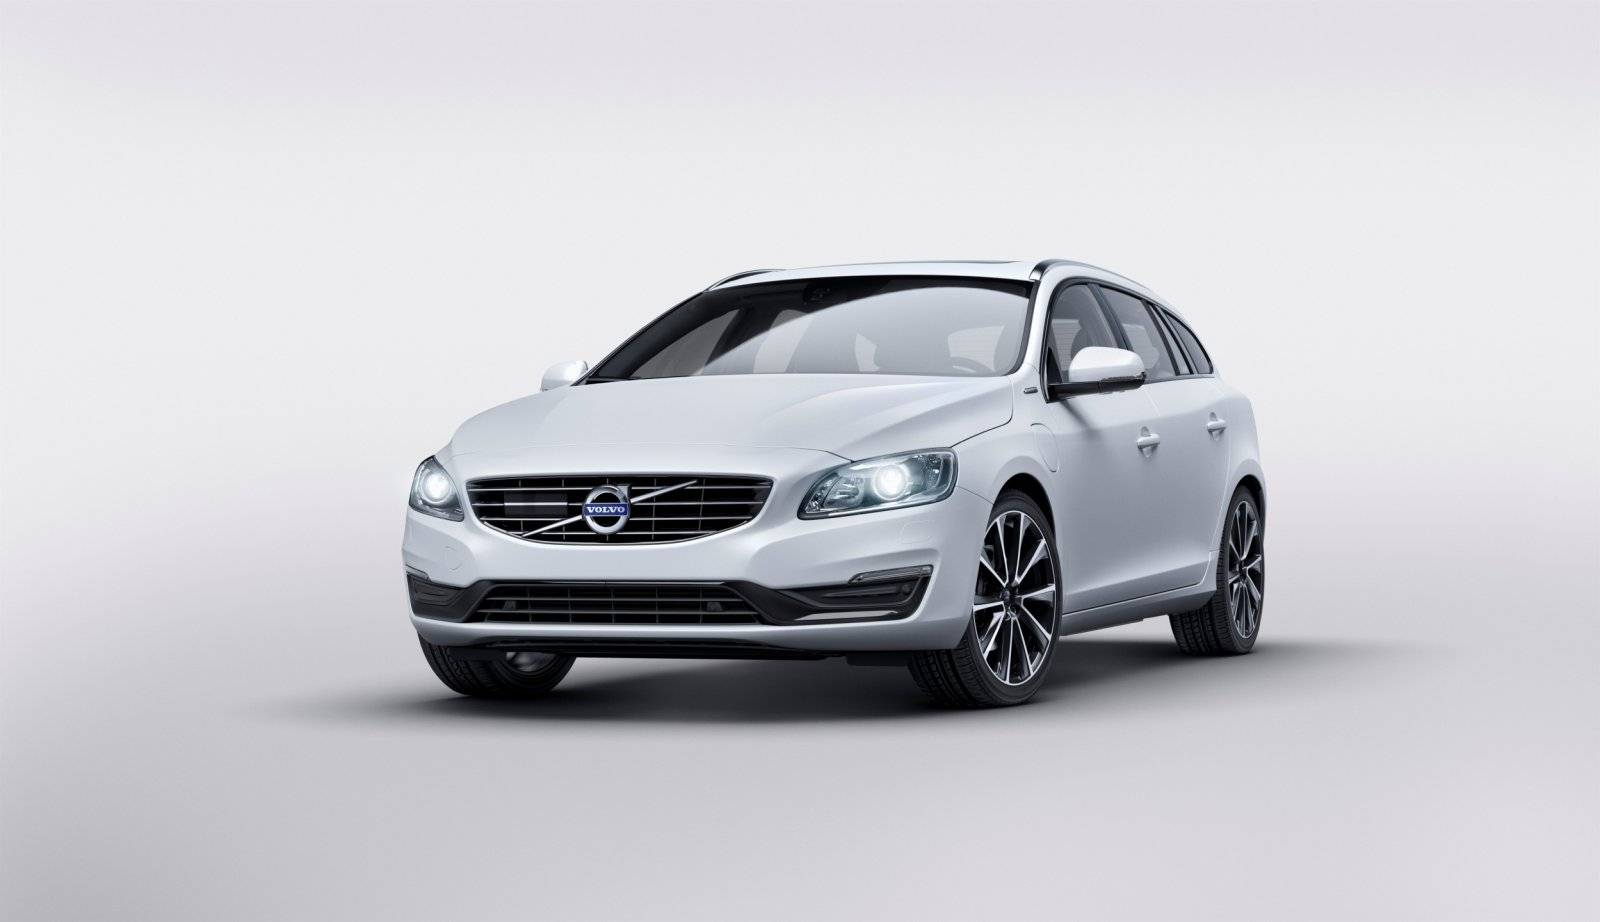 volvo xc90 kopen with Volvo Presenteert V60 D5 Twin Engine on Vw Polo Vaste Trekhaak in addition Volvo V90 likewise Volvo Xc40 Proefrit Event together with 408593 32468411700 as well Voertuigen Zoeken.